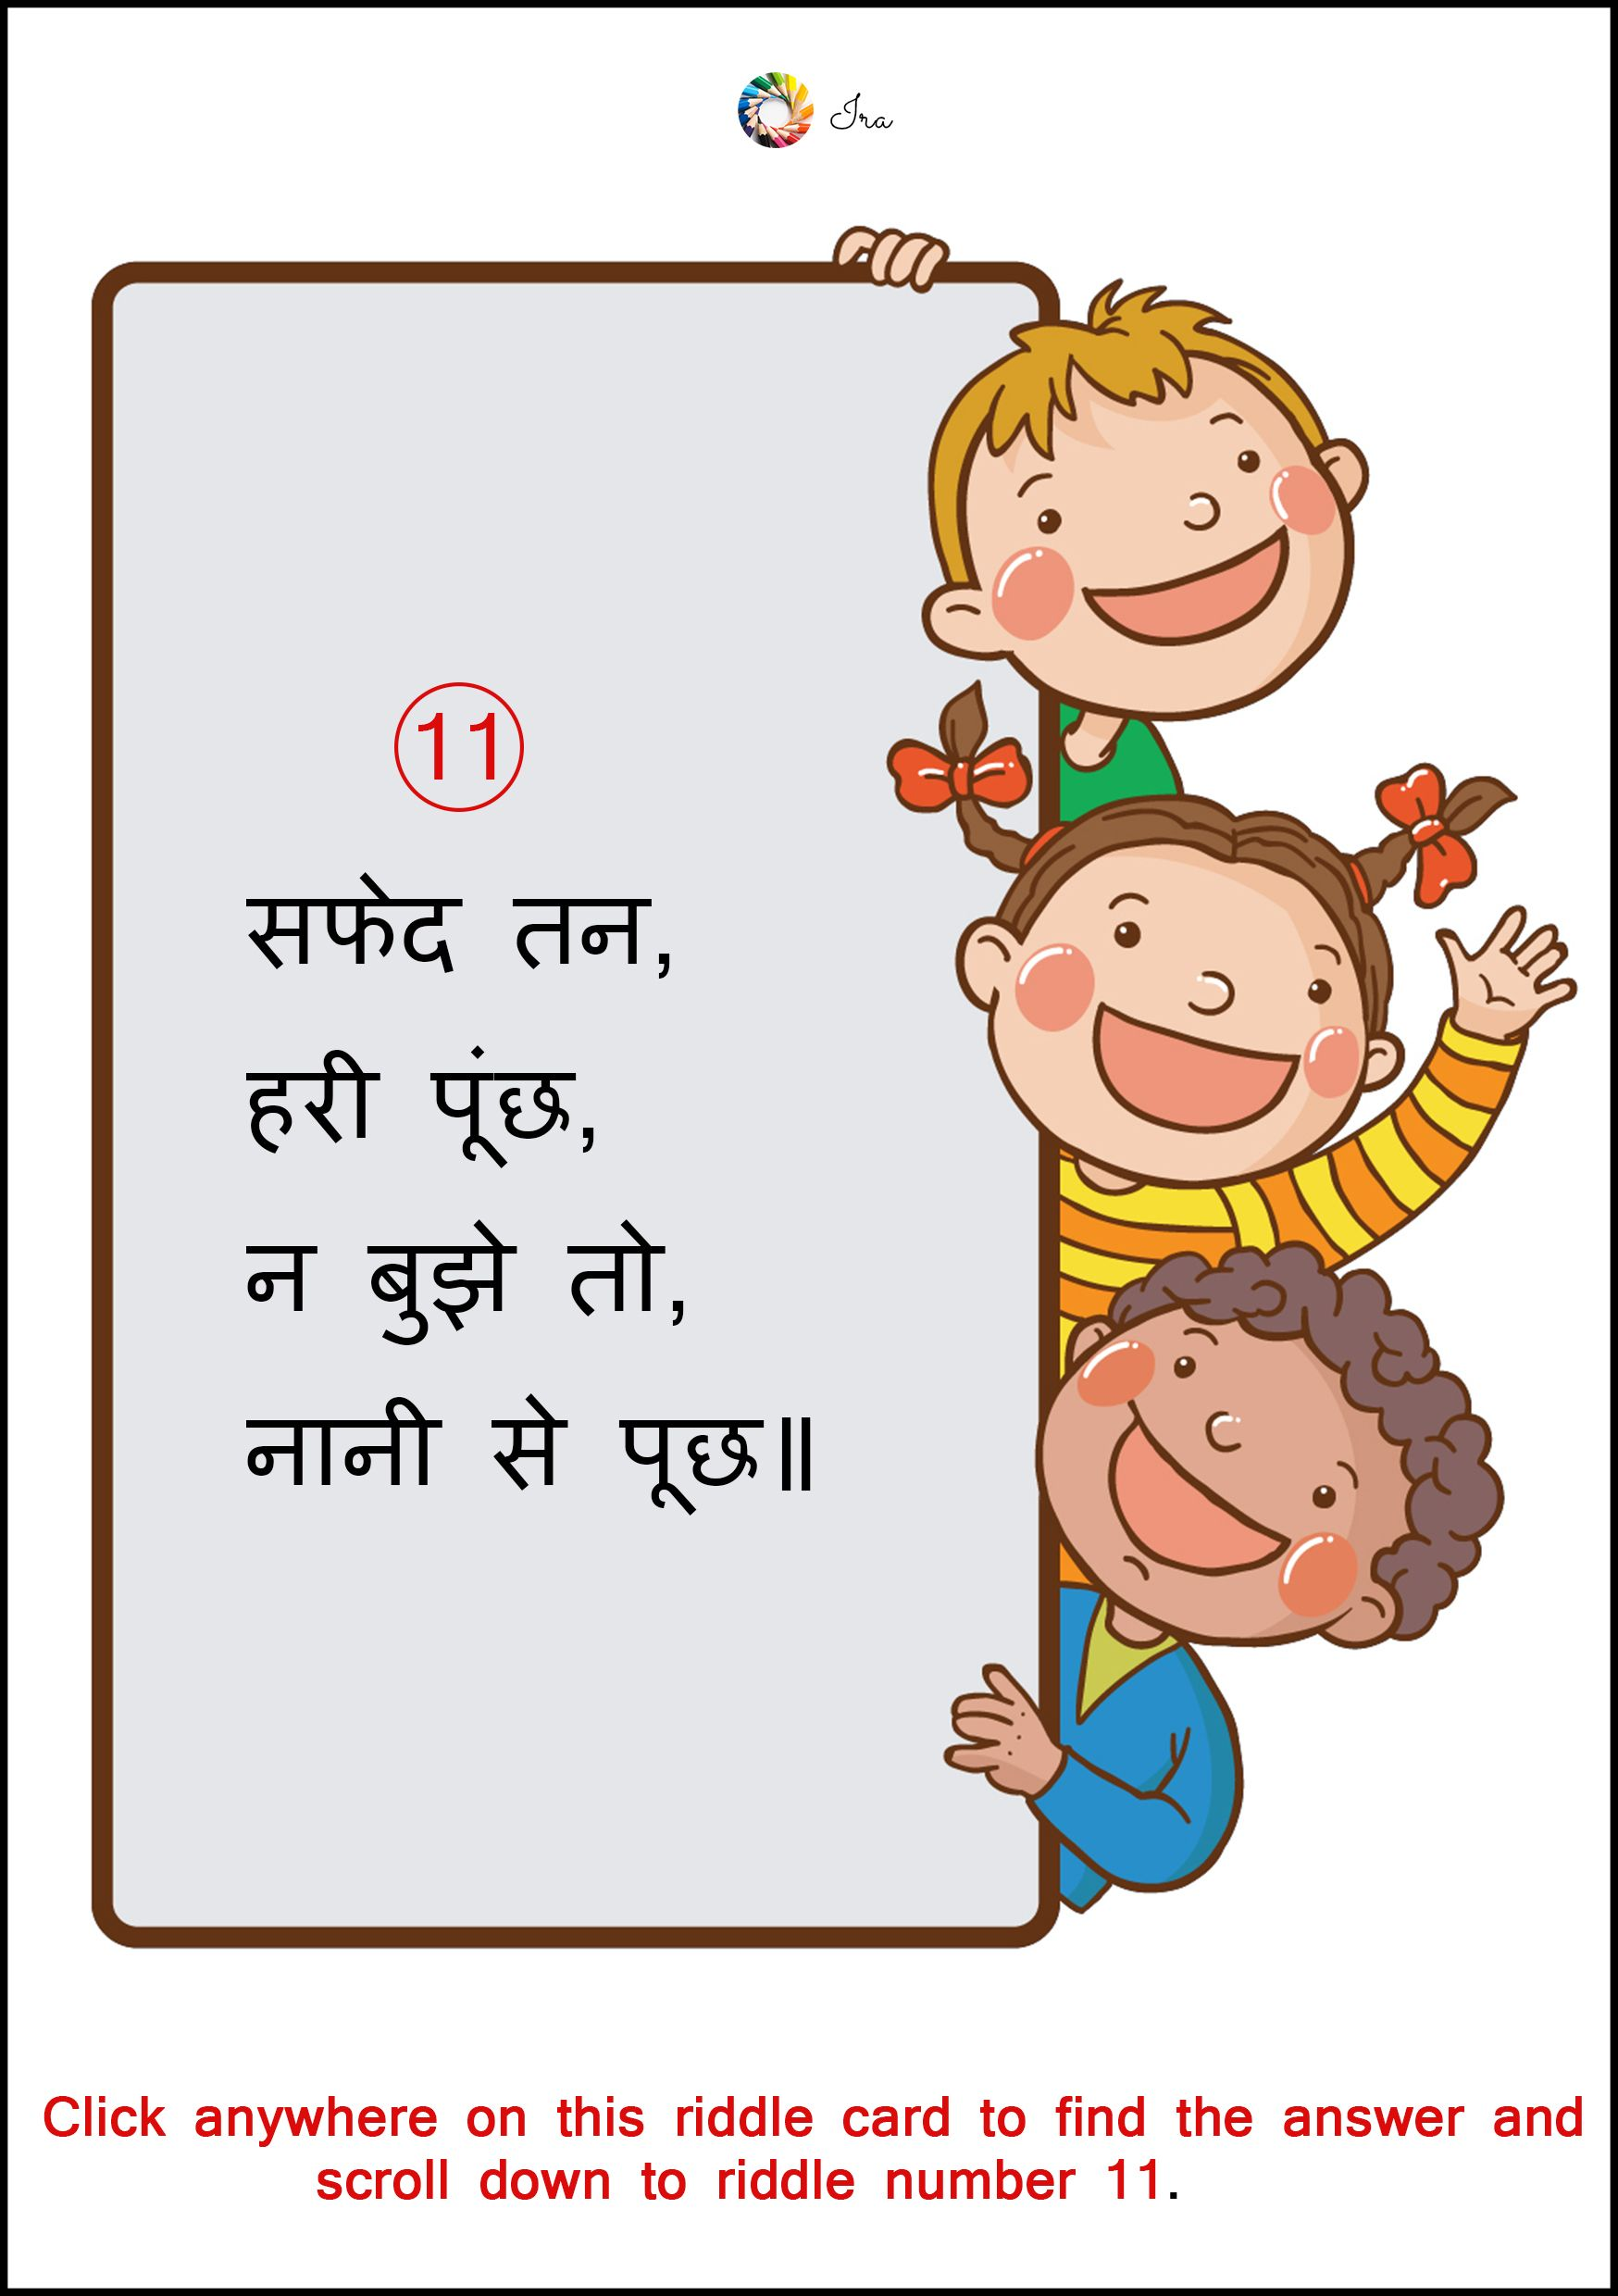 60 Rare Riddles In Hindi With Answers Ira Parenting Riddles Riddles With Answers Funny Brain Teasers